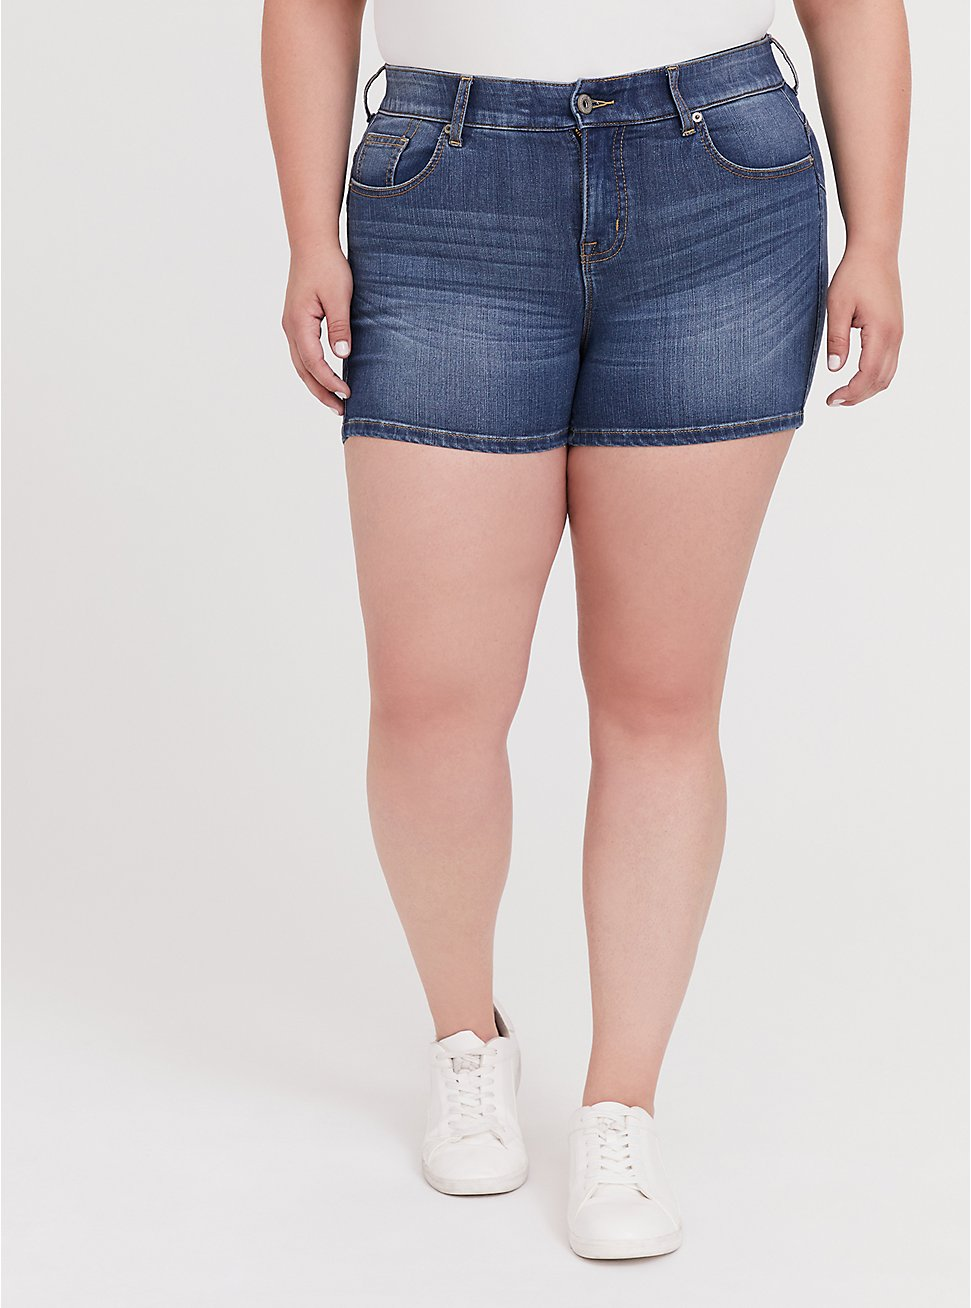 Plus Size Bombshell Skinny Short Short - Premium Stretch Medium Wash, TIDES, hi-res